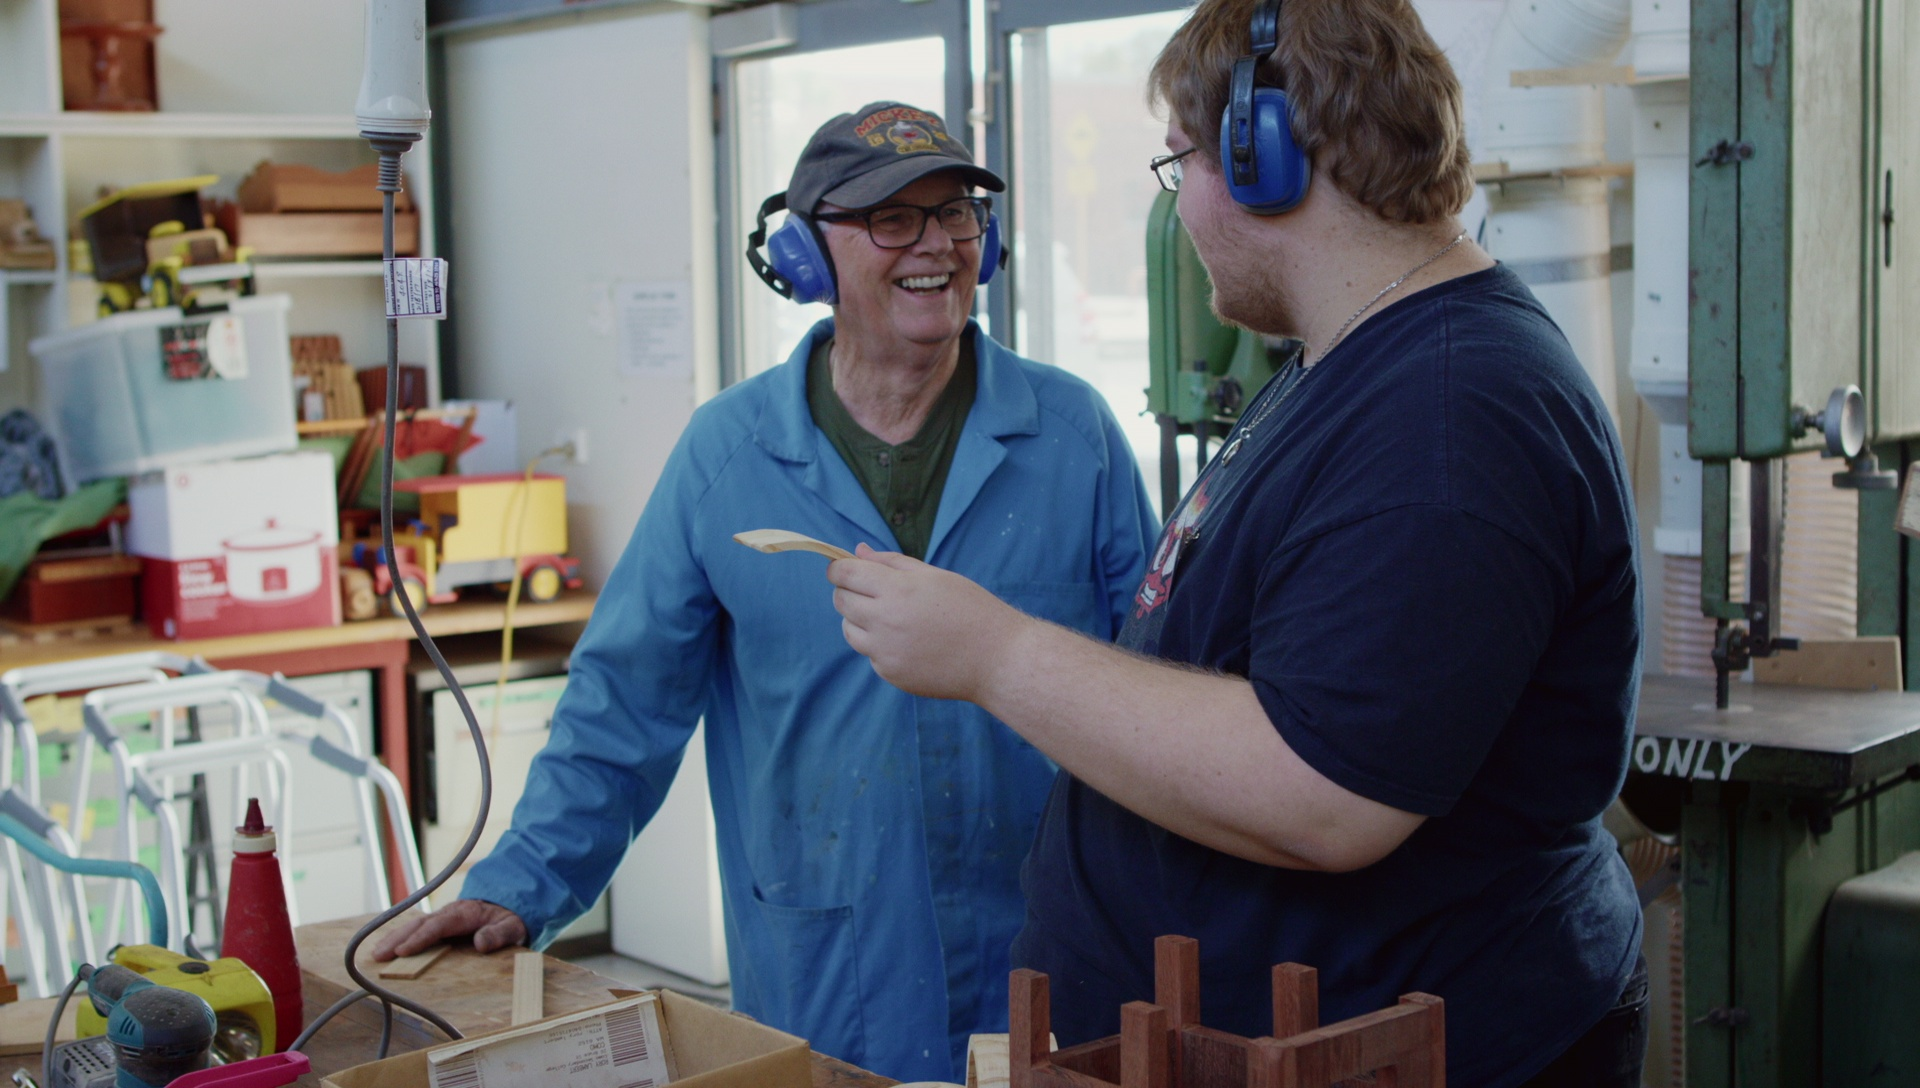 Image from Intergenerational film. Two men interacting with one another in a tool shed